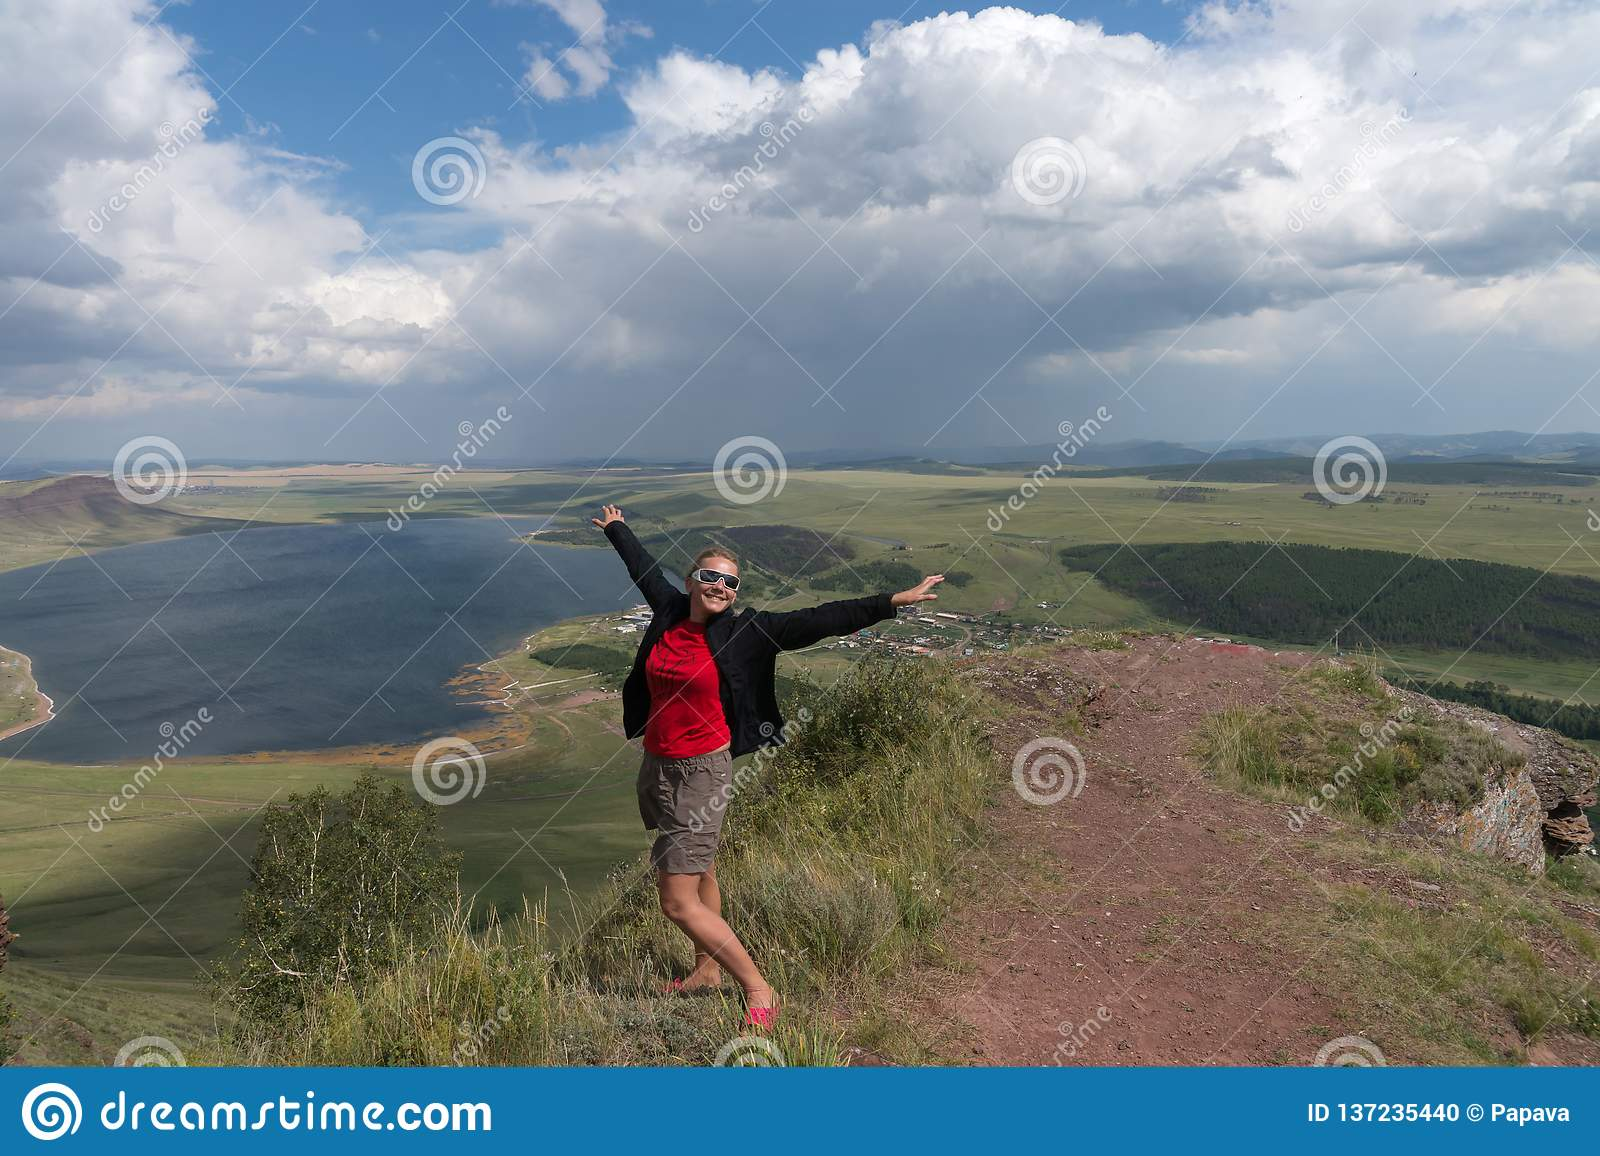 An adult woman stands, arms outstretched, on a high mountain, against the backdrop of a lake and a cloudy sky